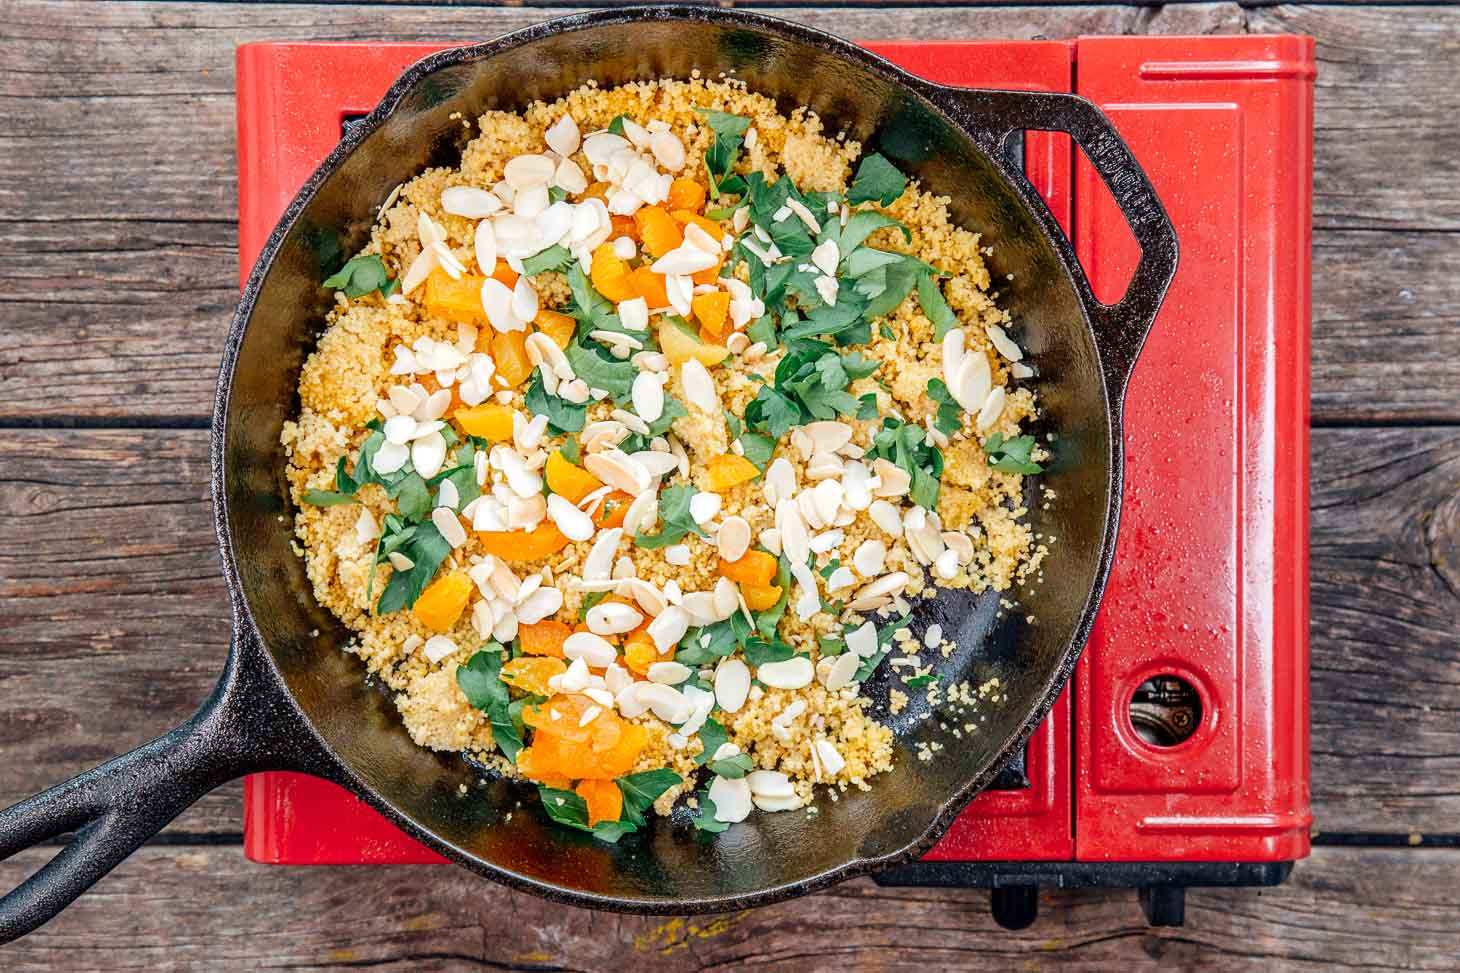 Couscous with apricots, almonds, and parsley in a cast iron skillet